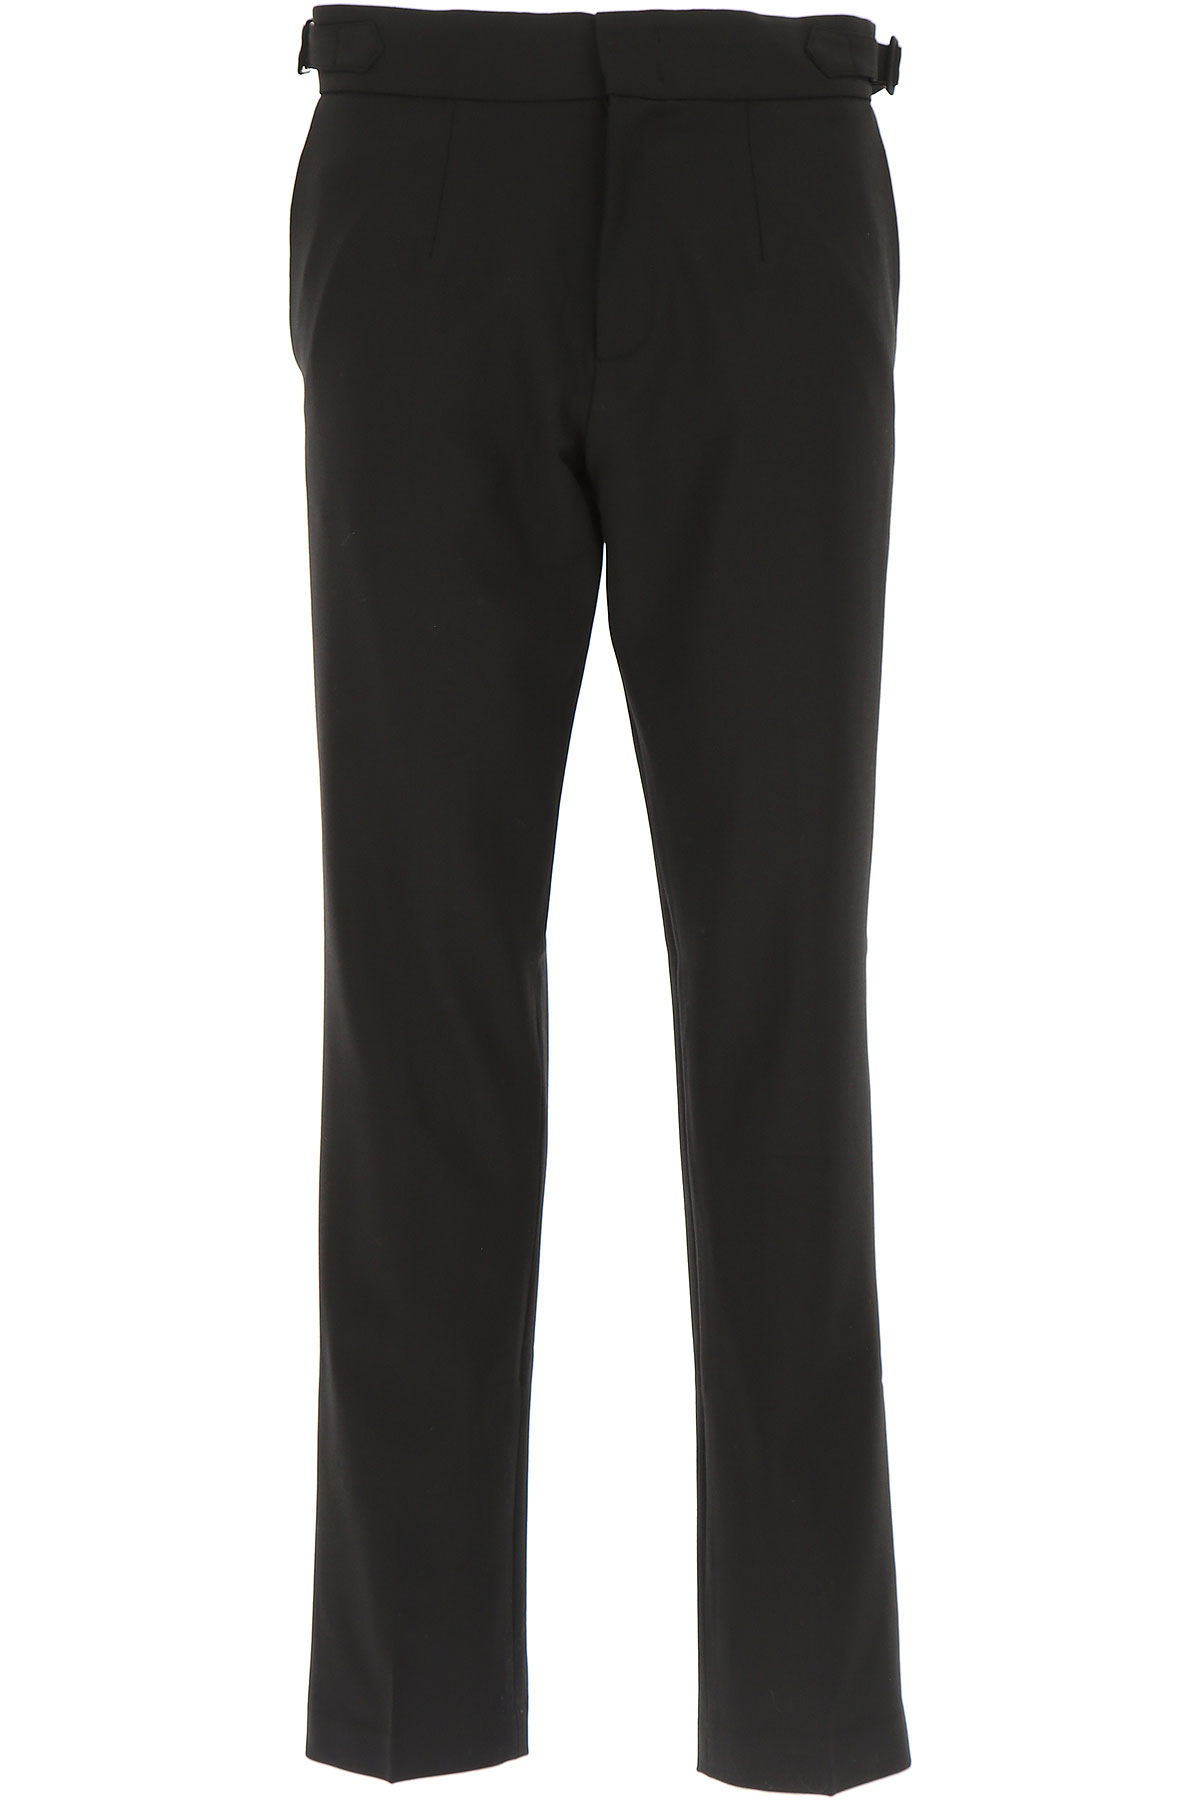 Image of Maison Flaneur Pants for Men, Black, polyester, 2017, 30 32 34 36